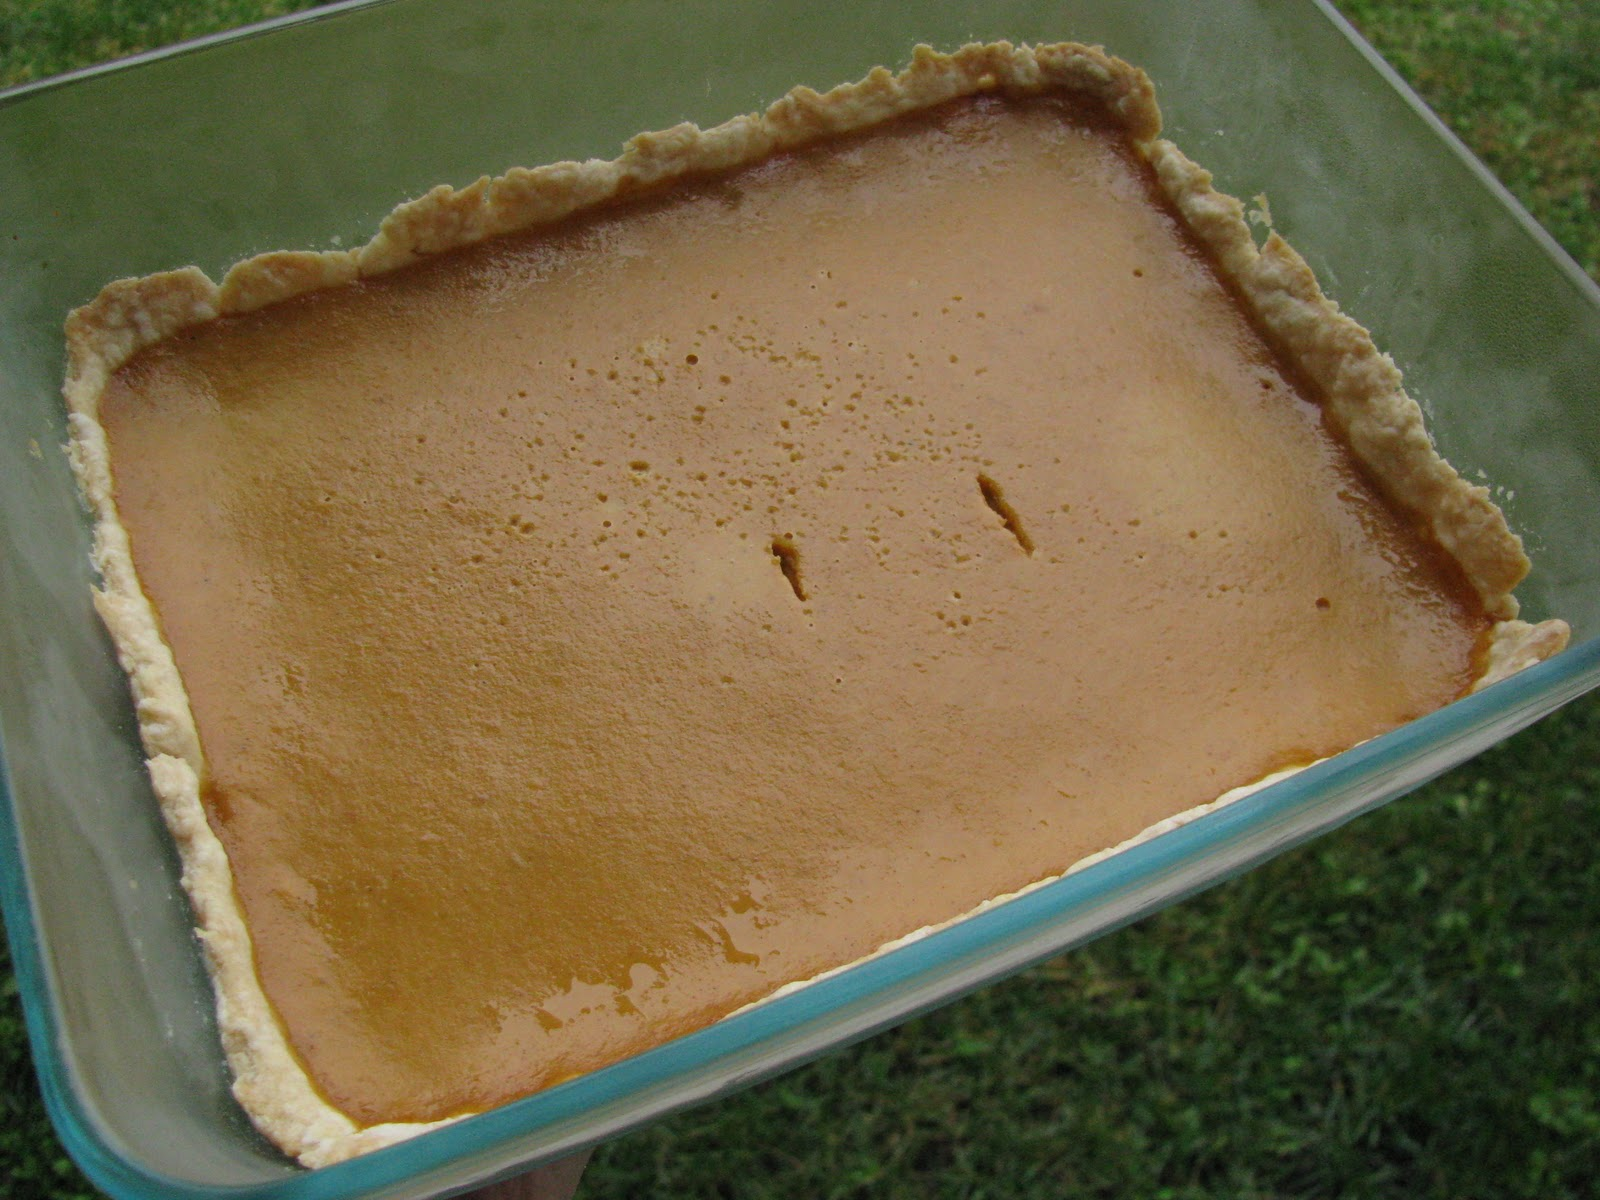 parallelogram shaped food - photo #19